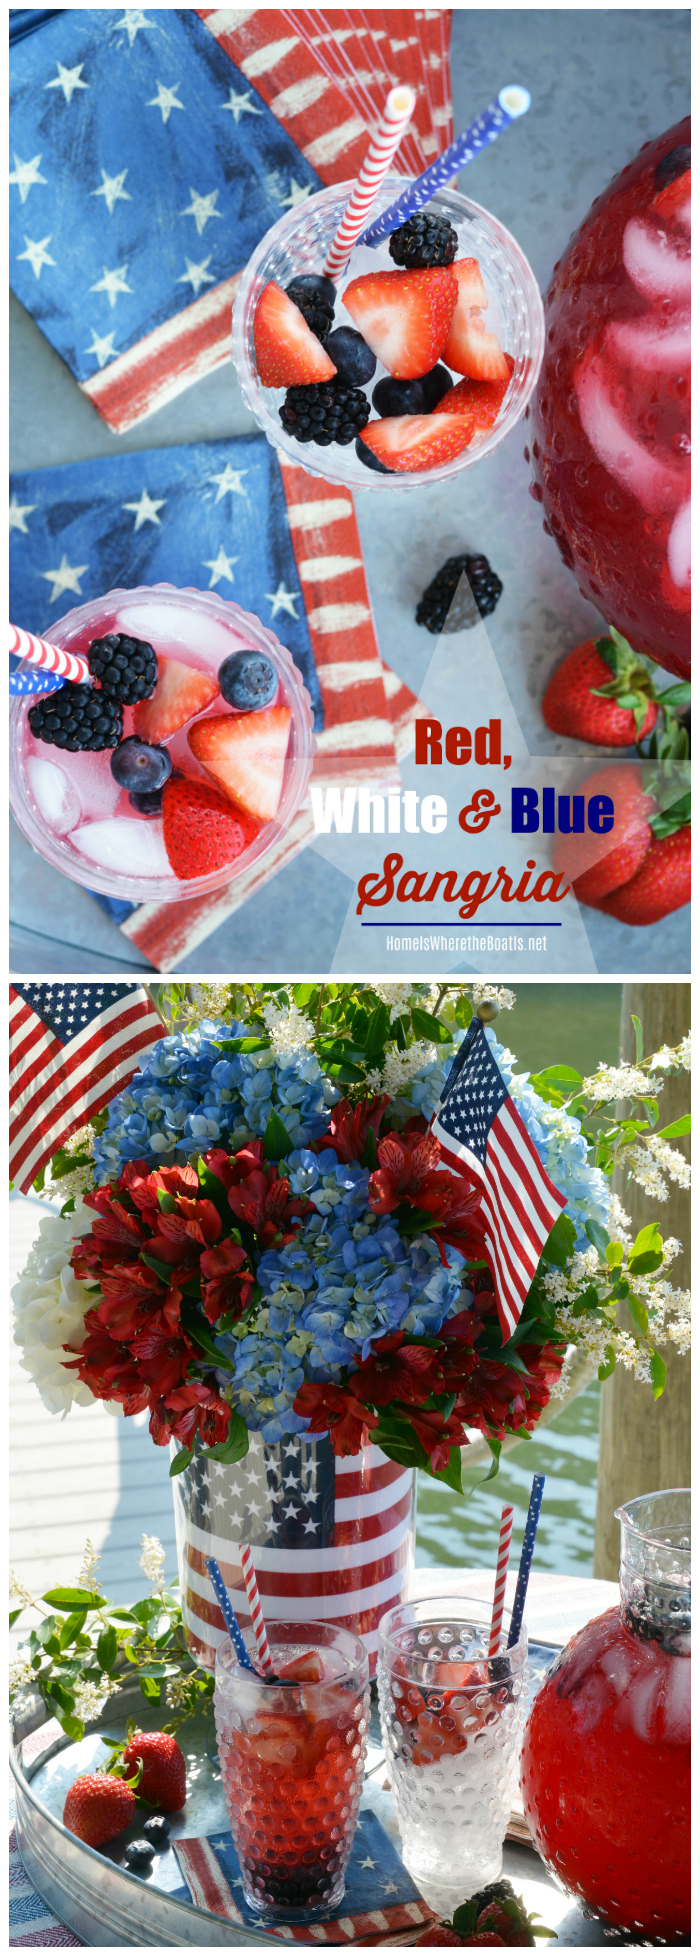 Red, White and Blue Sangria, as easy to mix as it is to drink! | ©homeiswheretheboatis.net #4thofjuly #cocktail #redwhiteandblue